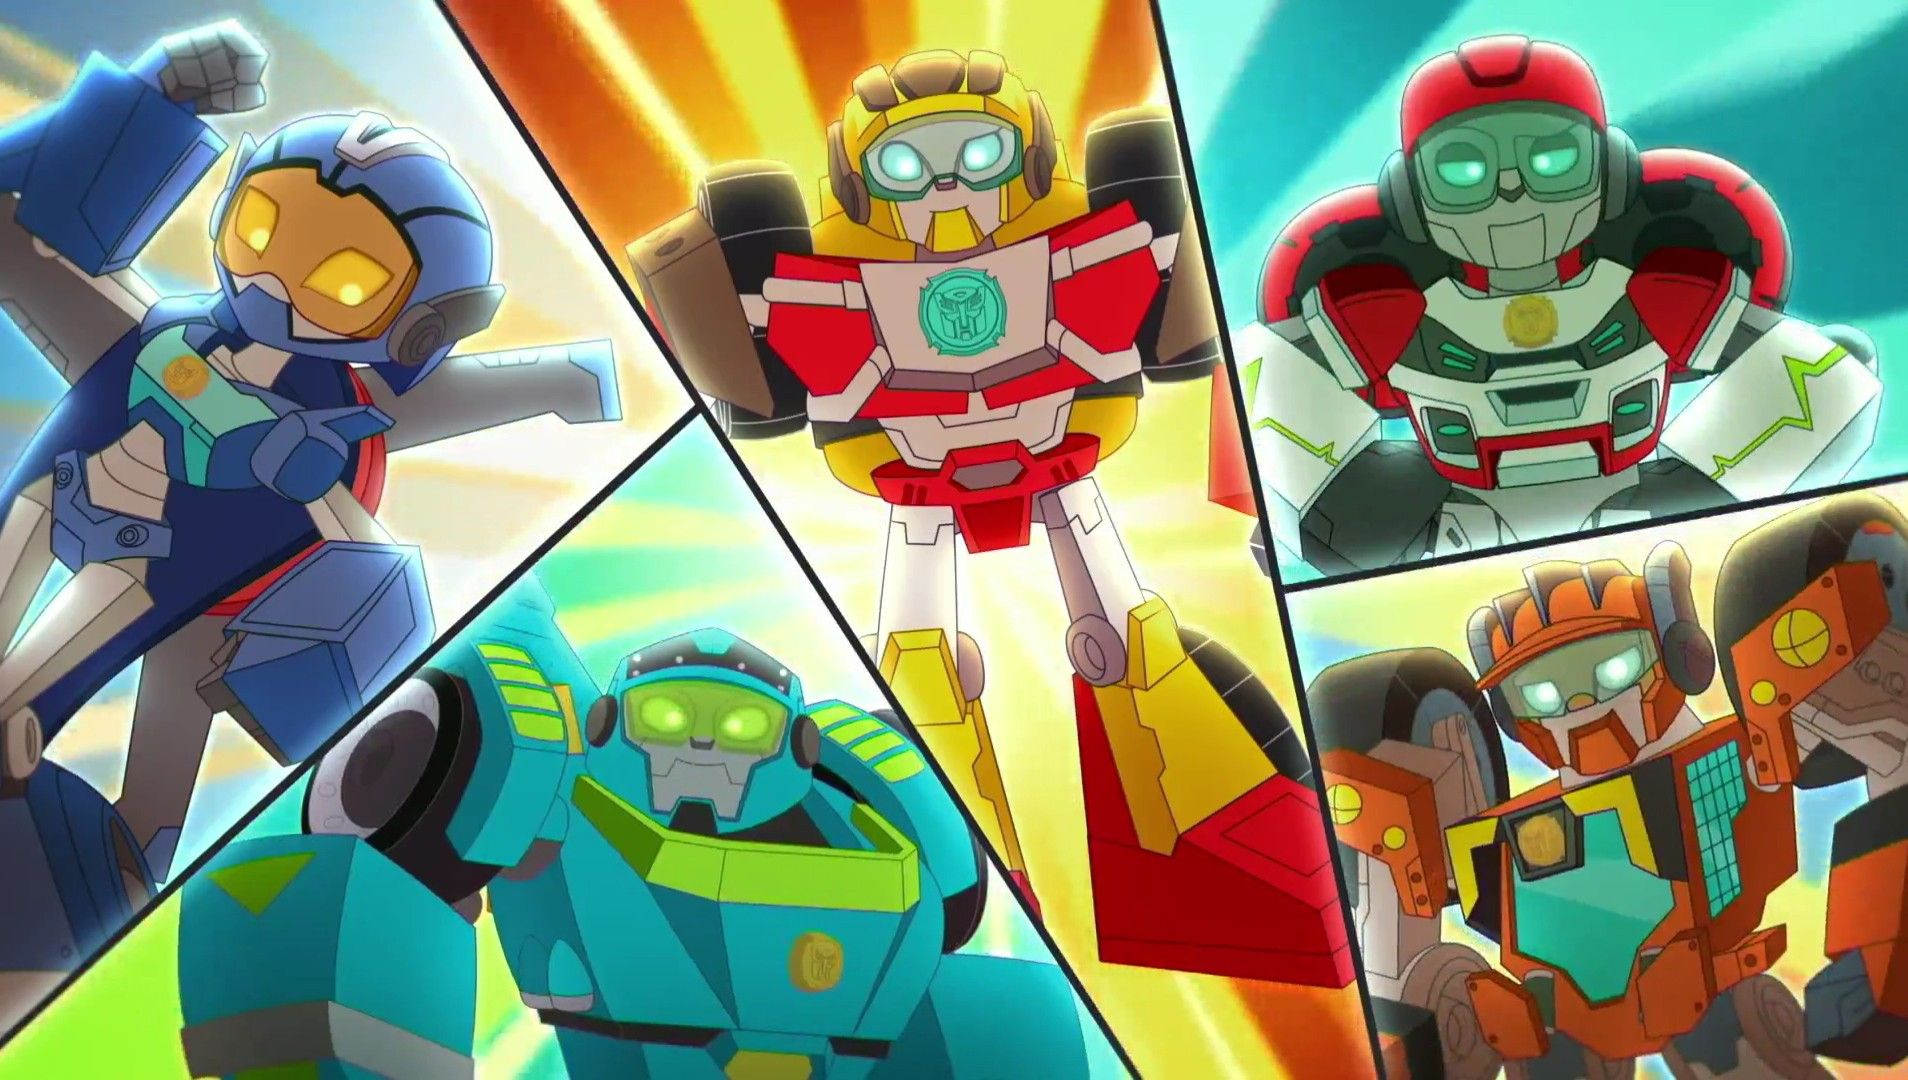 Pin By Mayank On Transformers Transformers Rescue Bots Rescue Bots Marshall Paw Patrol